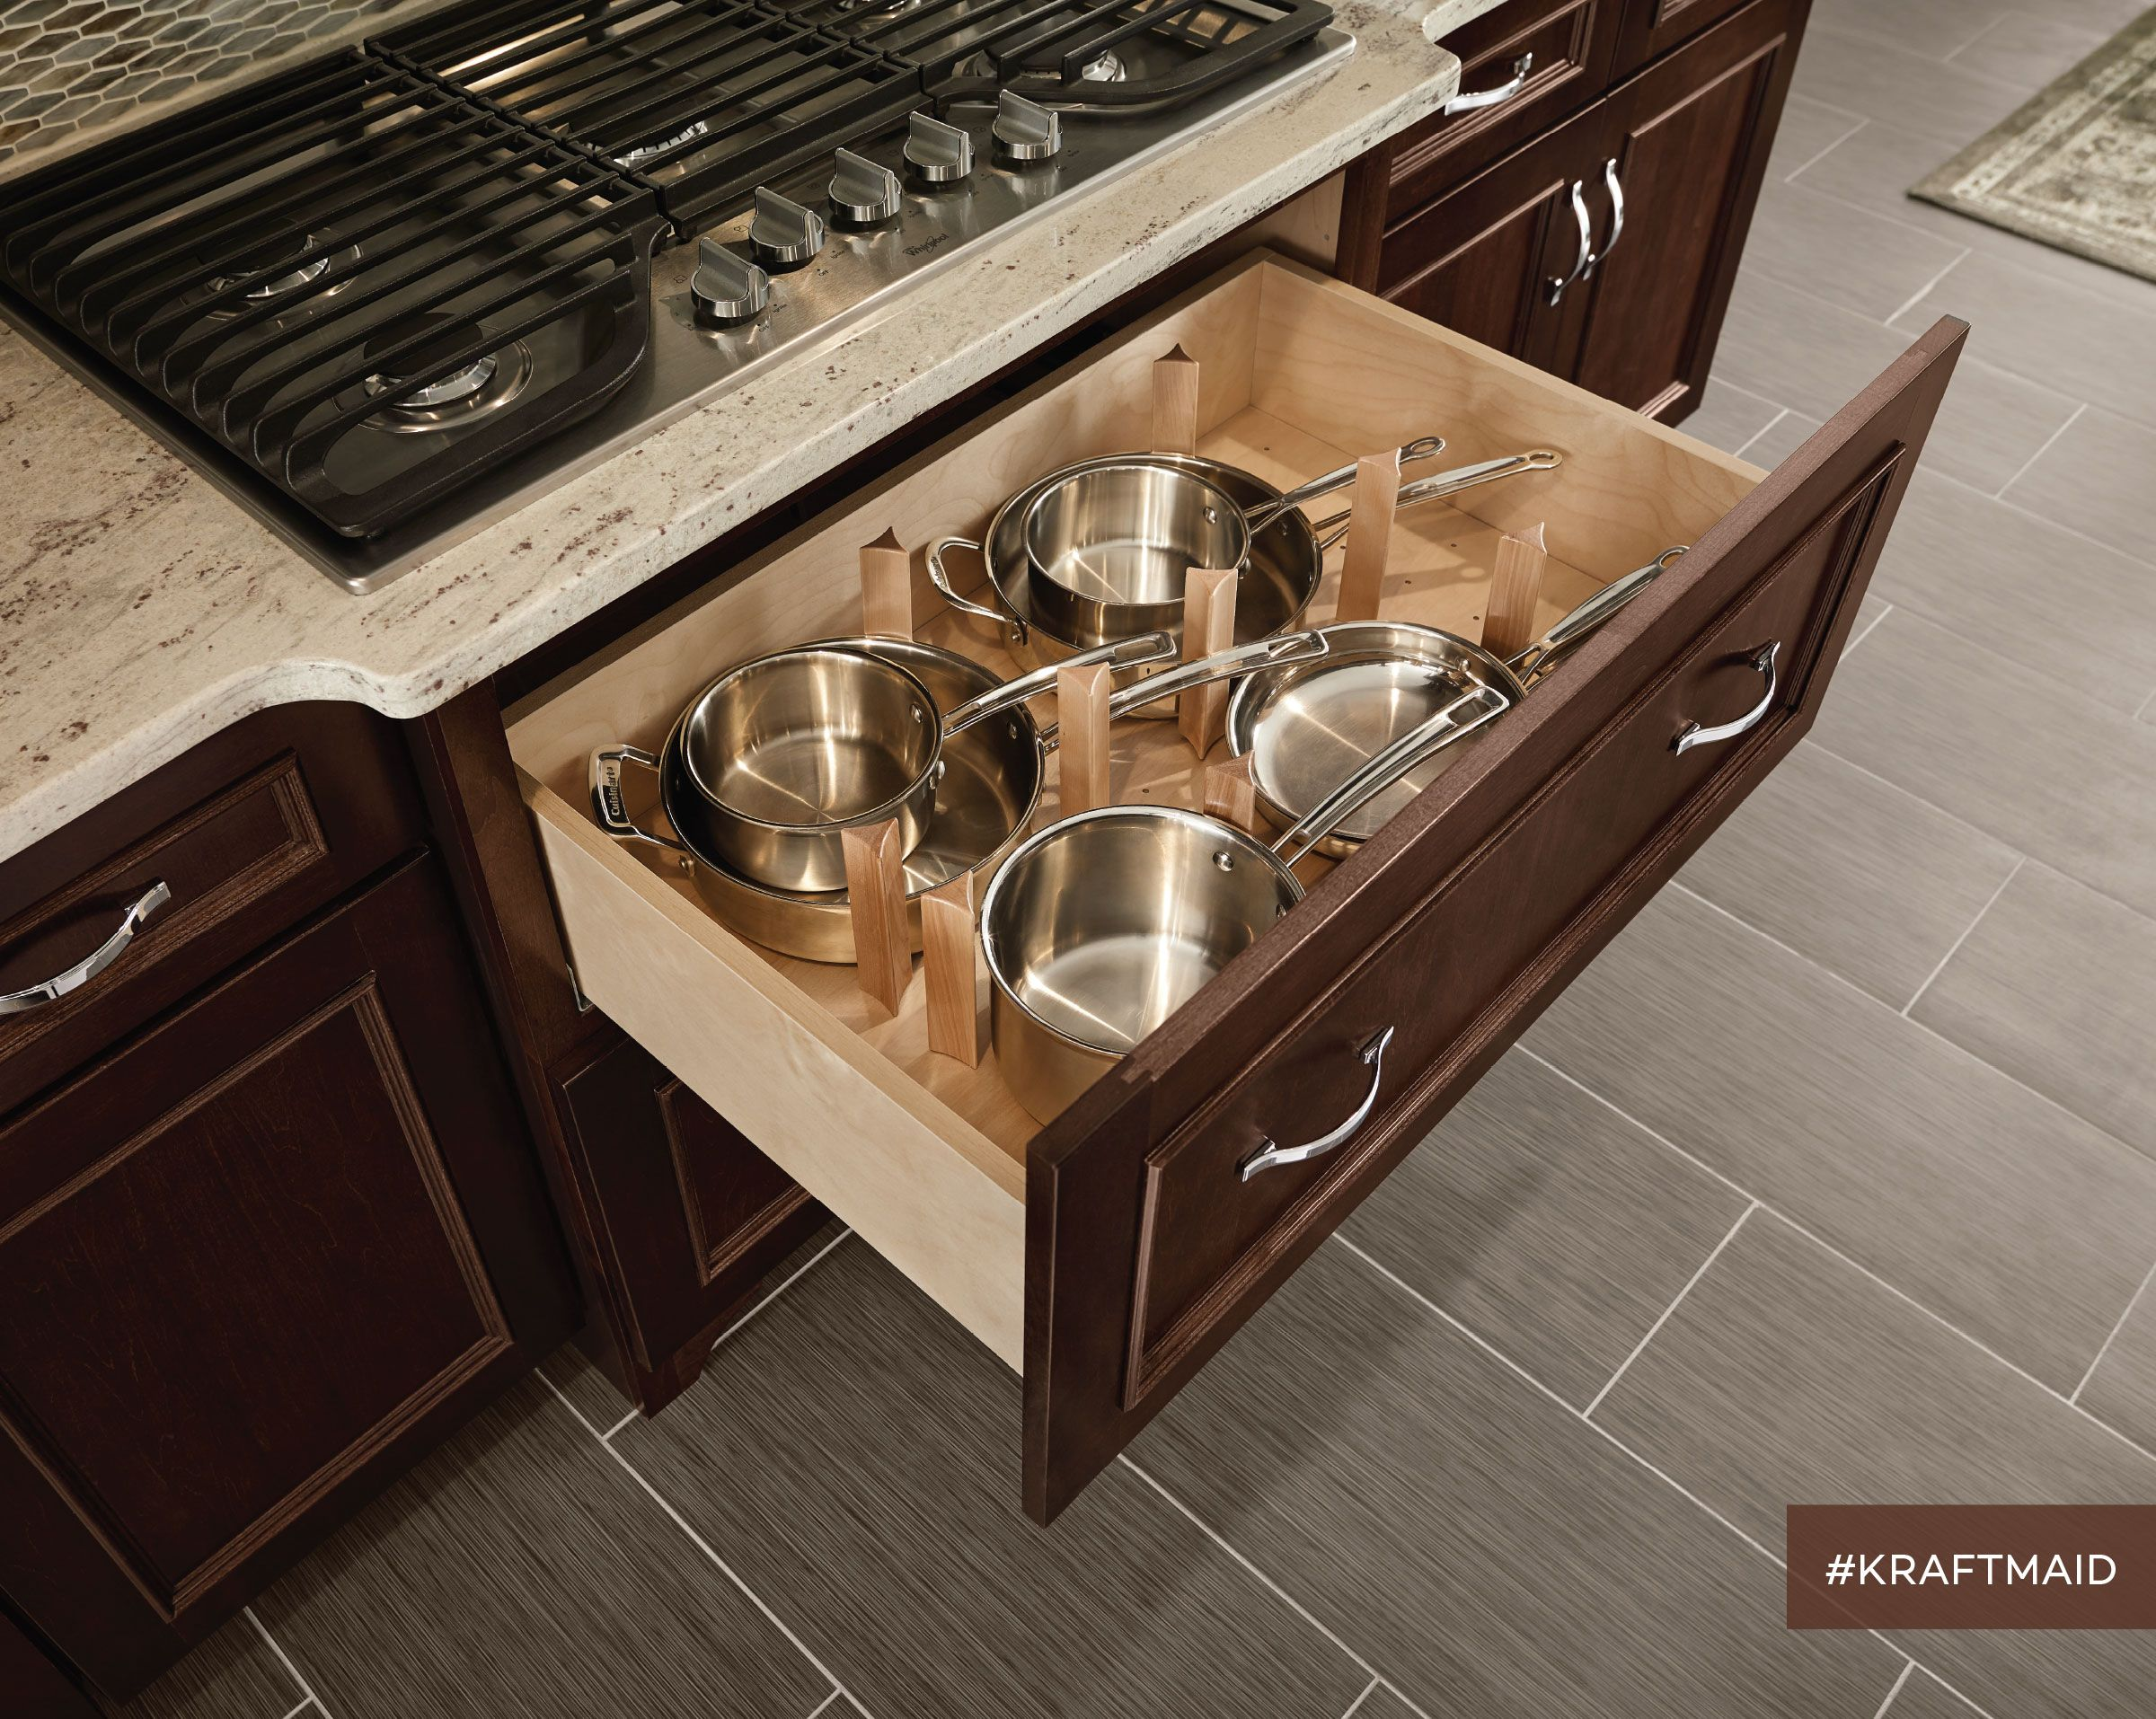 kitchen drawer organizer sink spray hose the scoop top fits under cooktop and provides